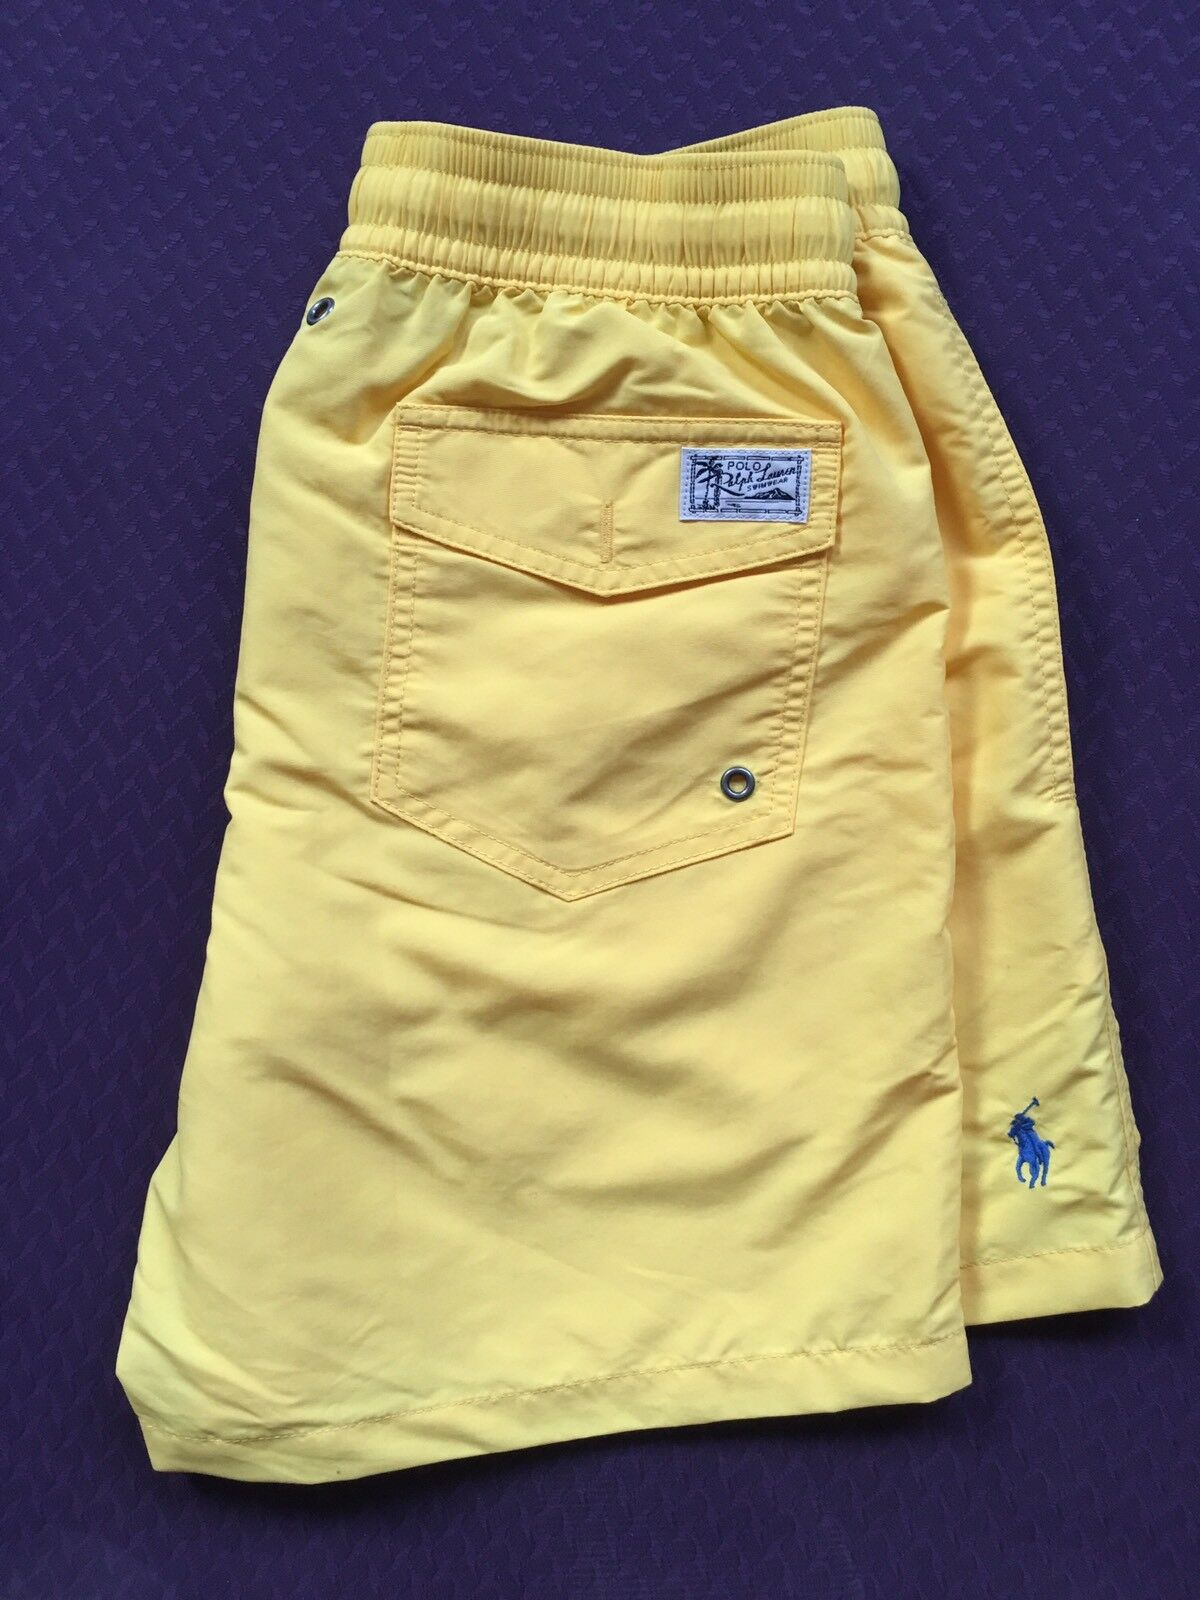 Polo Ralph Lauren Swim Shorts Traveler Trunk Yellow Size S or M